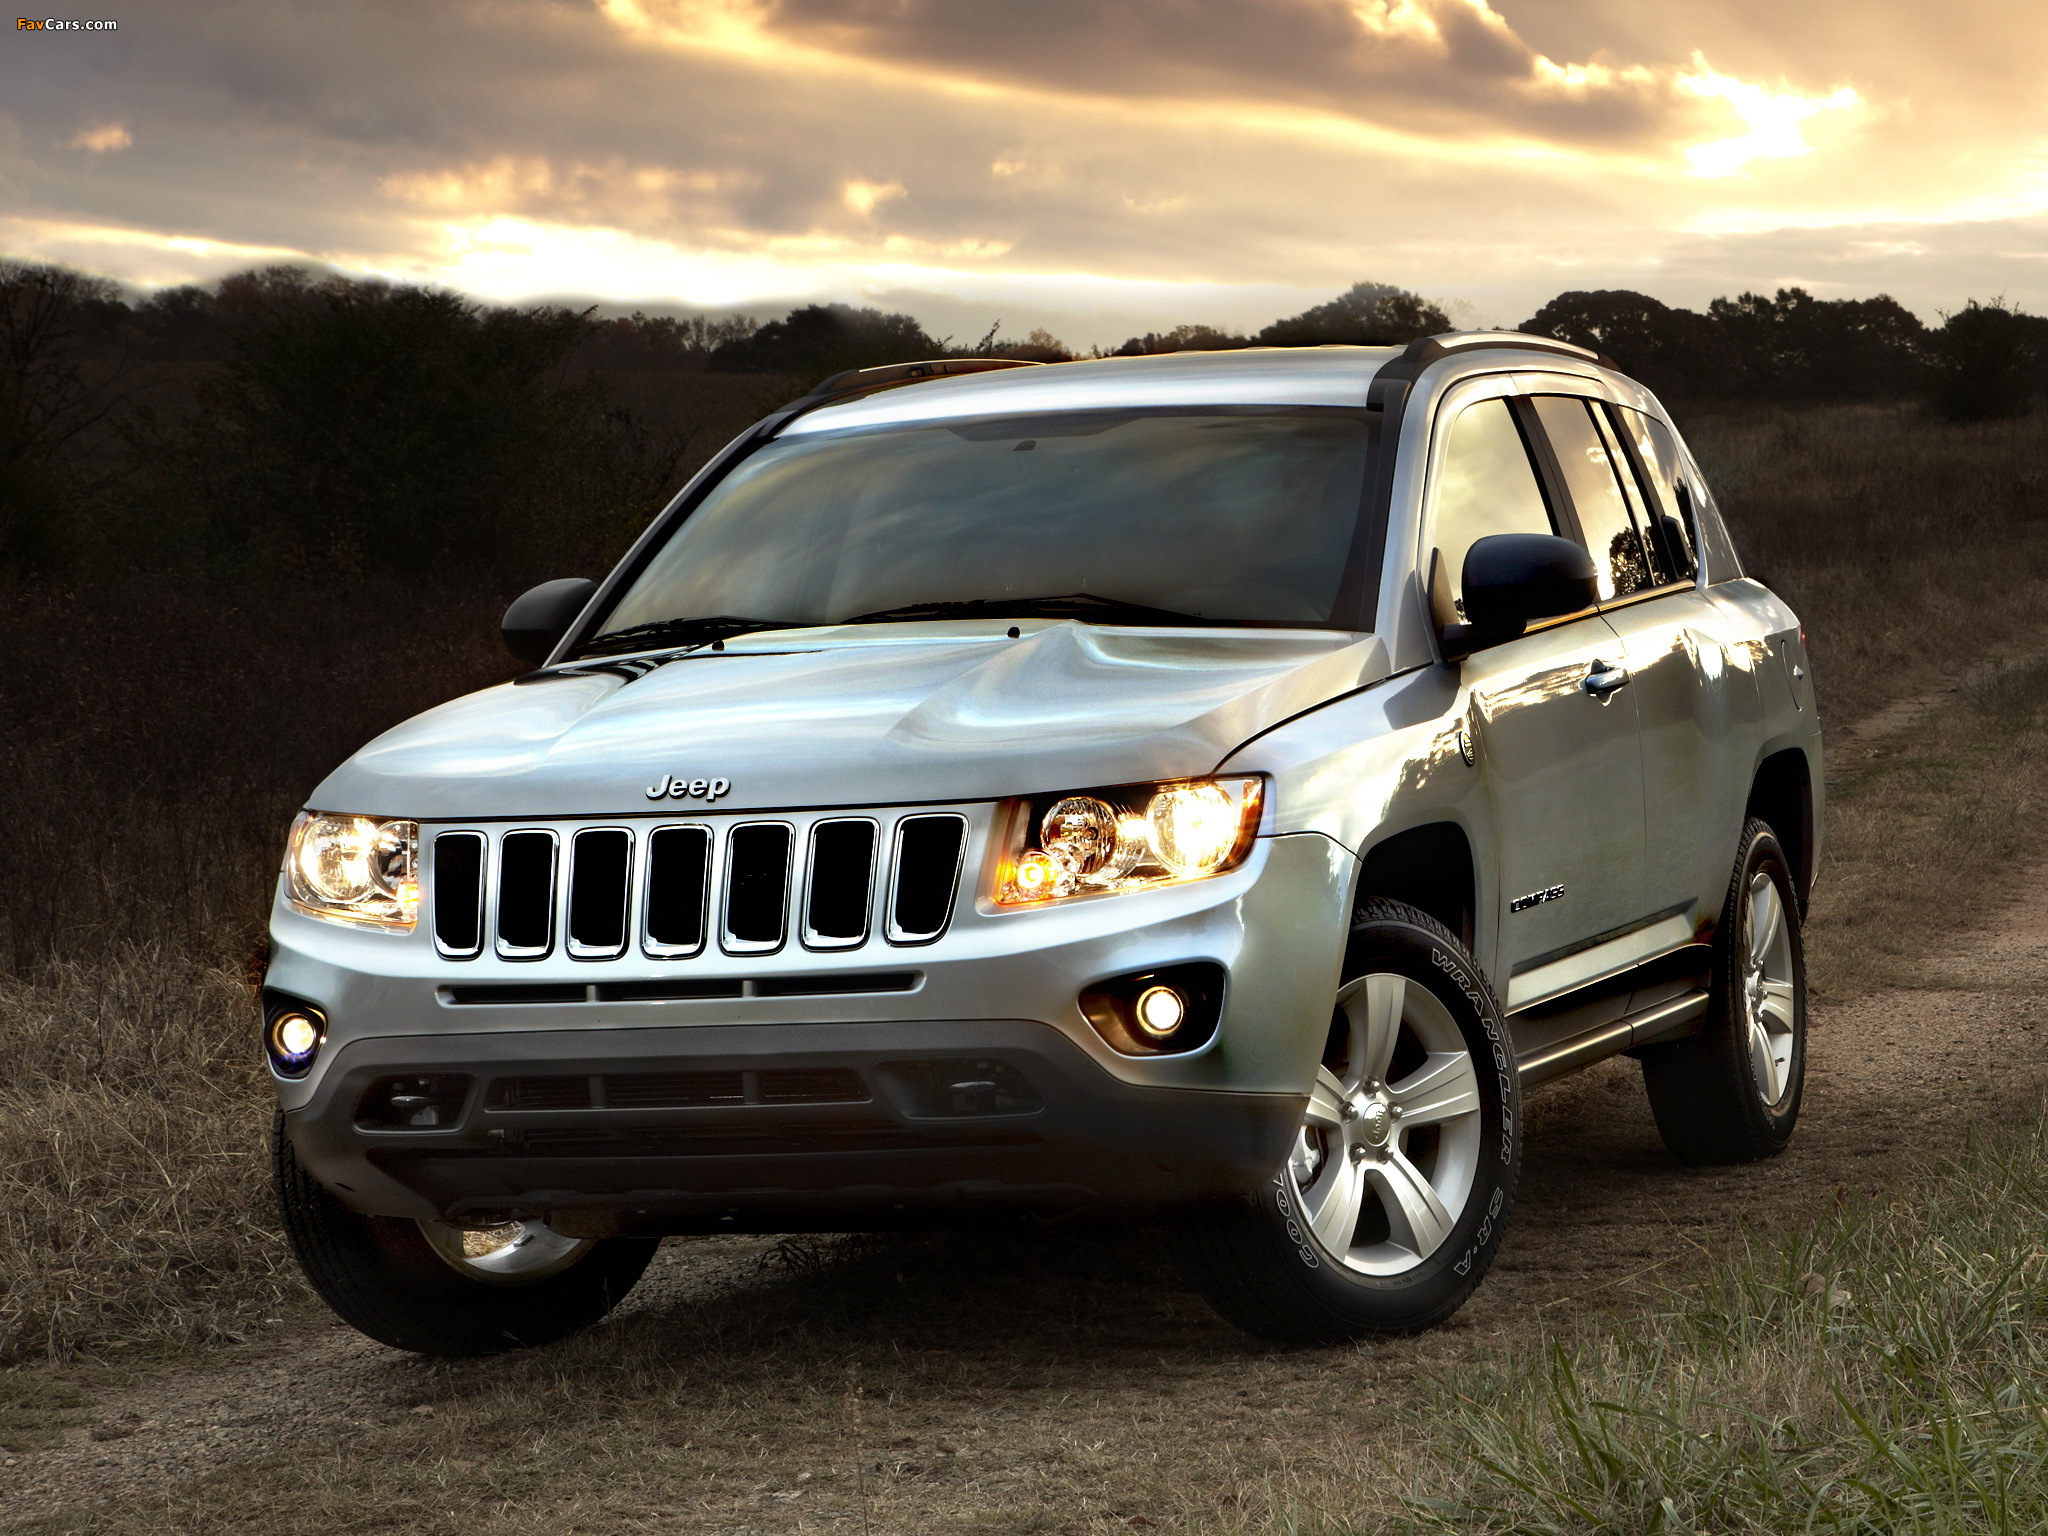 Jeep Compass 2010 images (2048 x 1536)